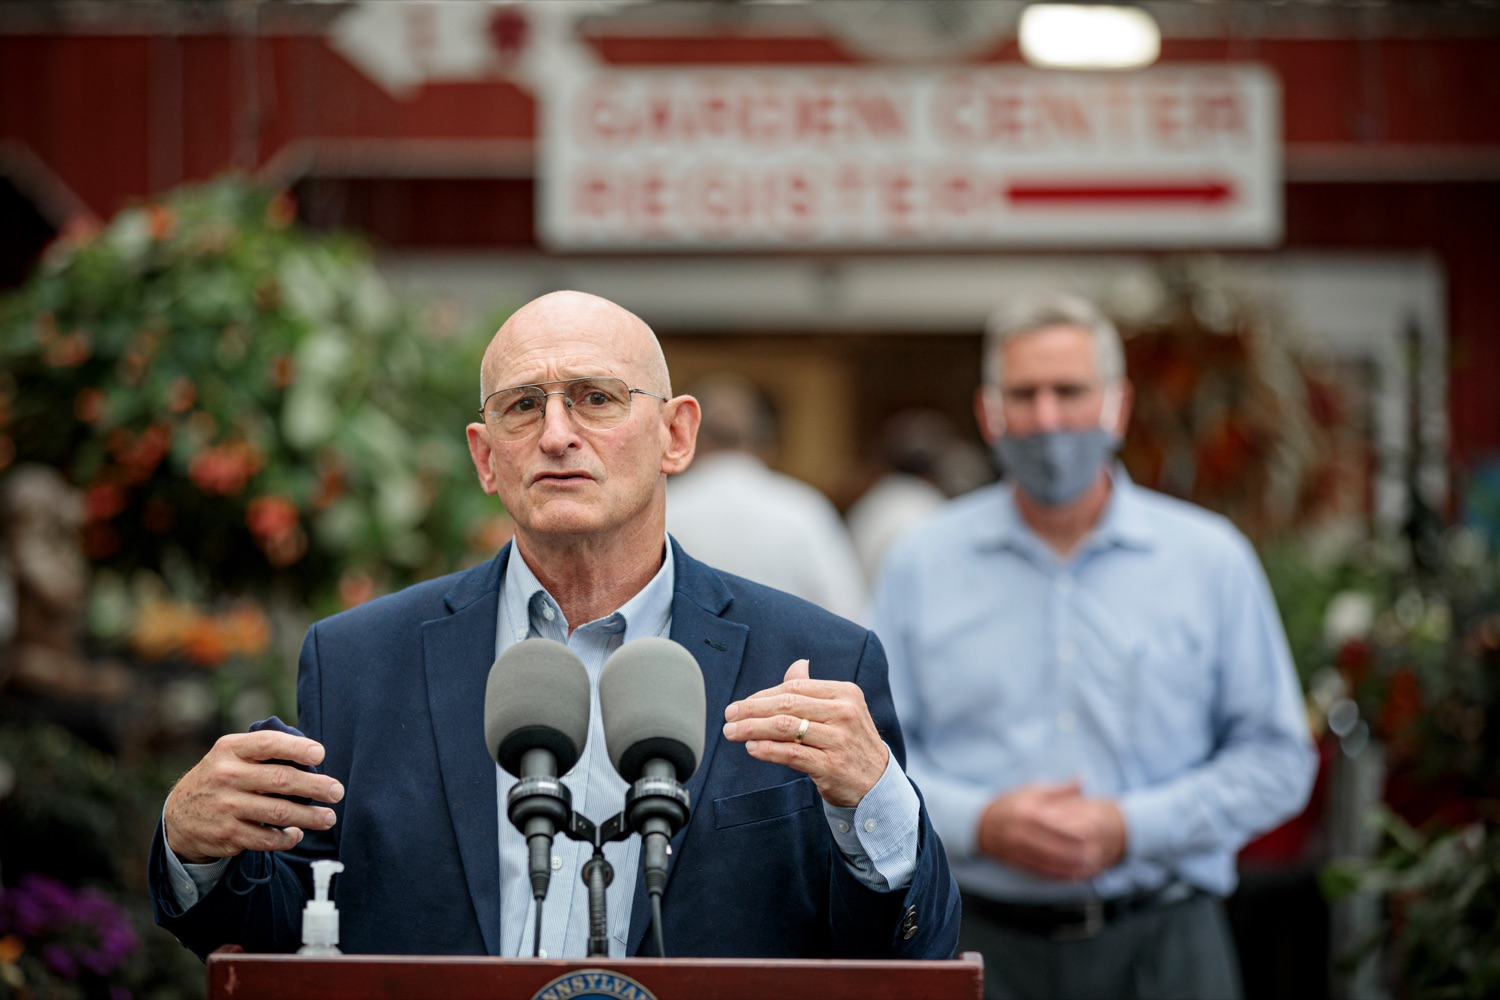 "<a href=""https://filesource.wostreaming.net/commonwealthofpa/photo/18235_AGRIC_SLF_NK_013.jpg"" target=""_blank"">⇣ Download Photo<br></a>Rick Roush, Penn State dean of agriculture, speaks during a press conference urging Pennsylvanians to act now against the Spotted Lanternfly for the sake of food security, at Cherry Hill Orchard Outlet and Garden Center in Lancaster on Thursday, September 10, 2020."